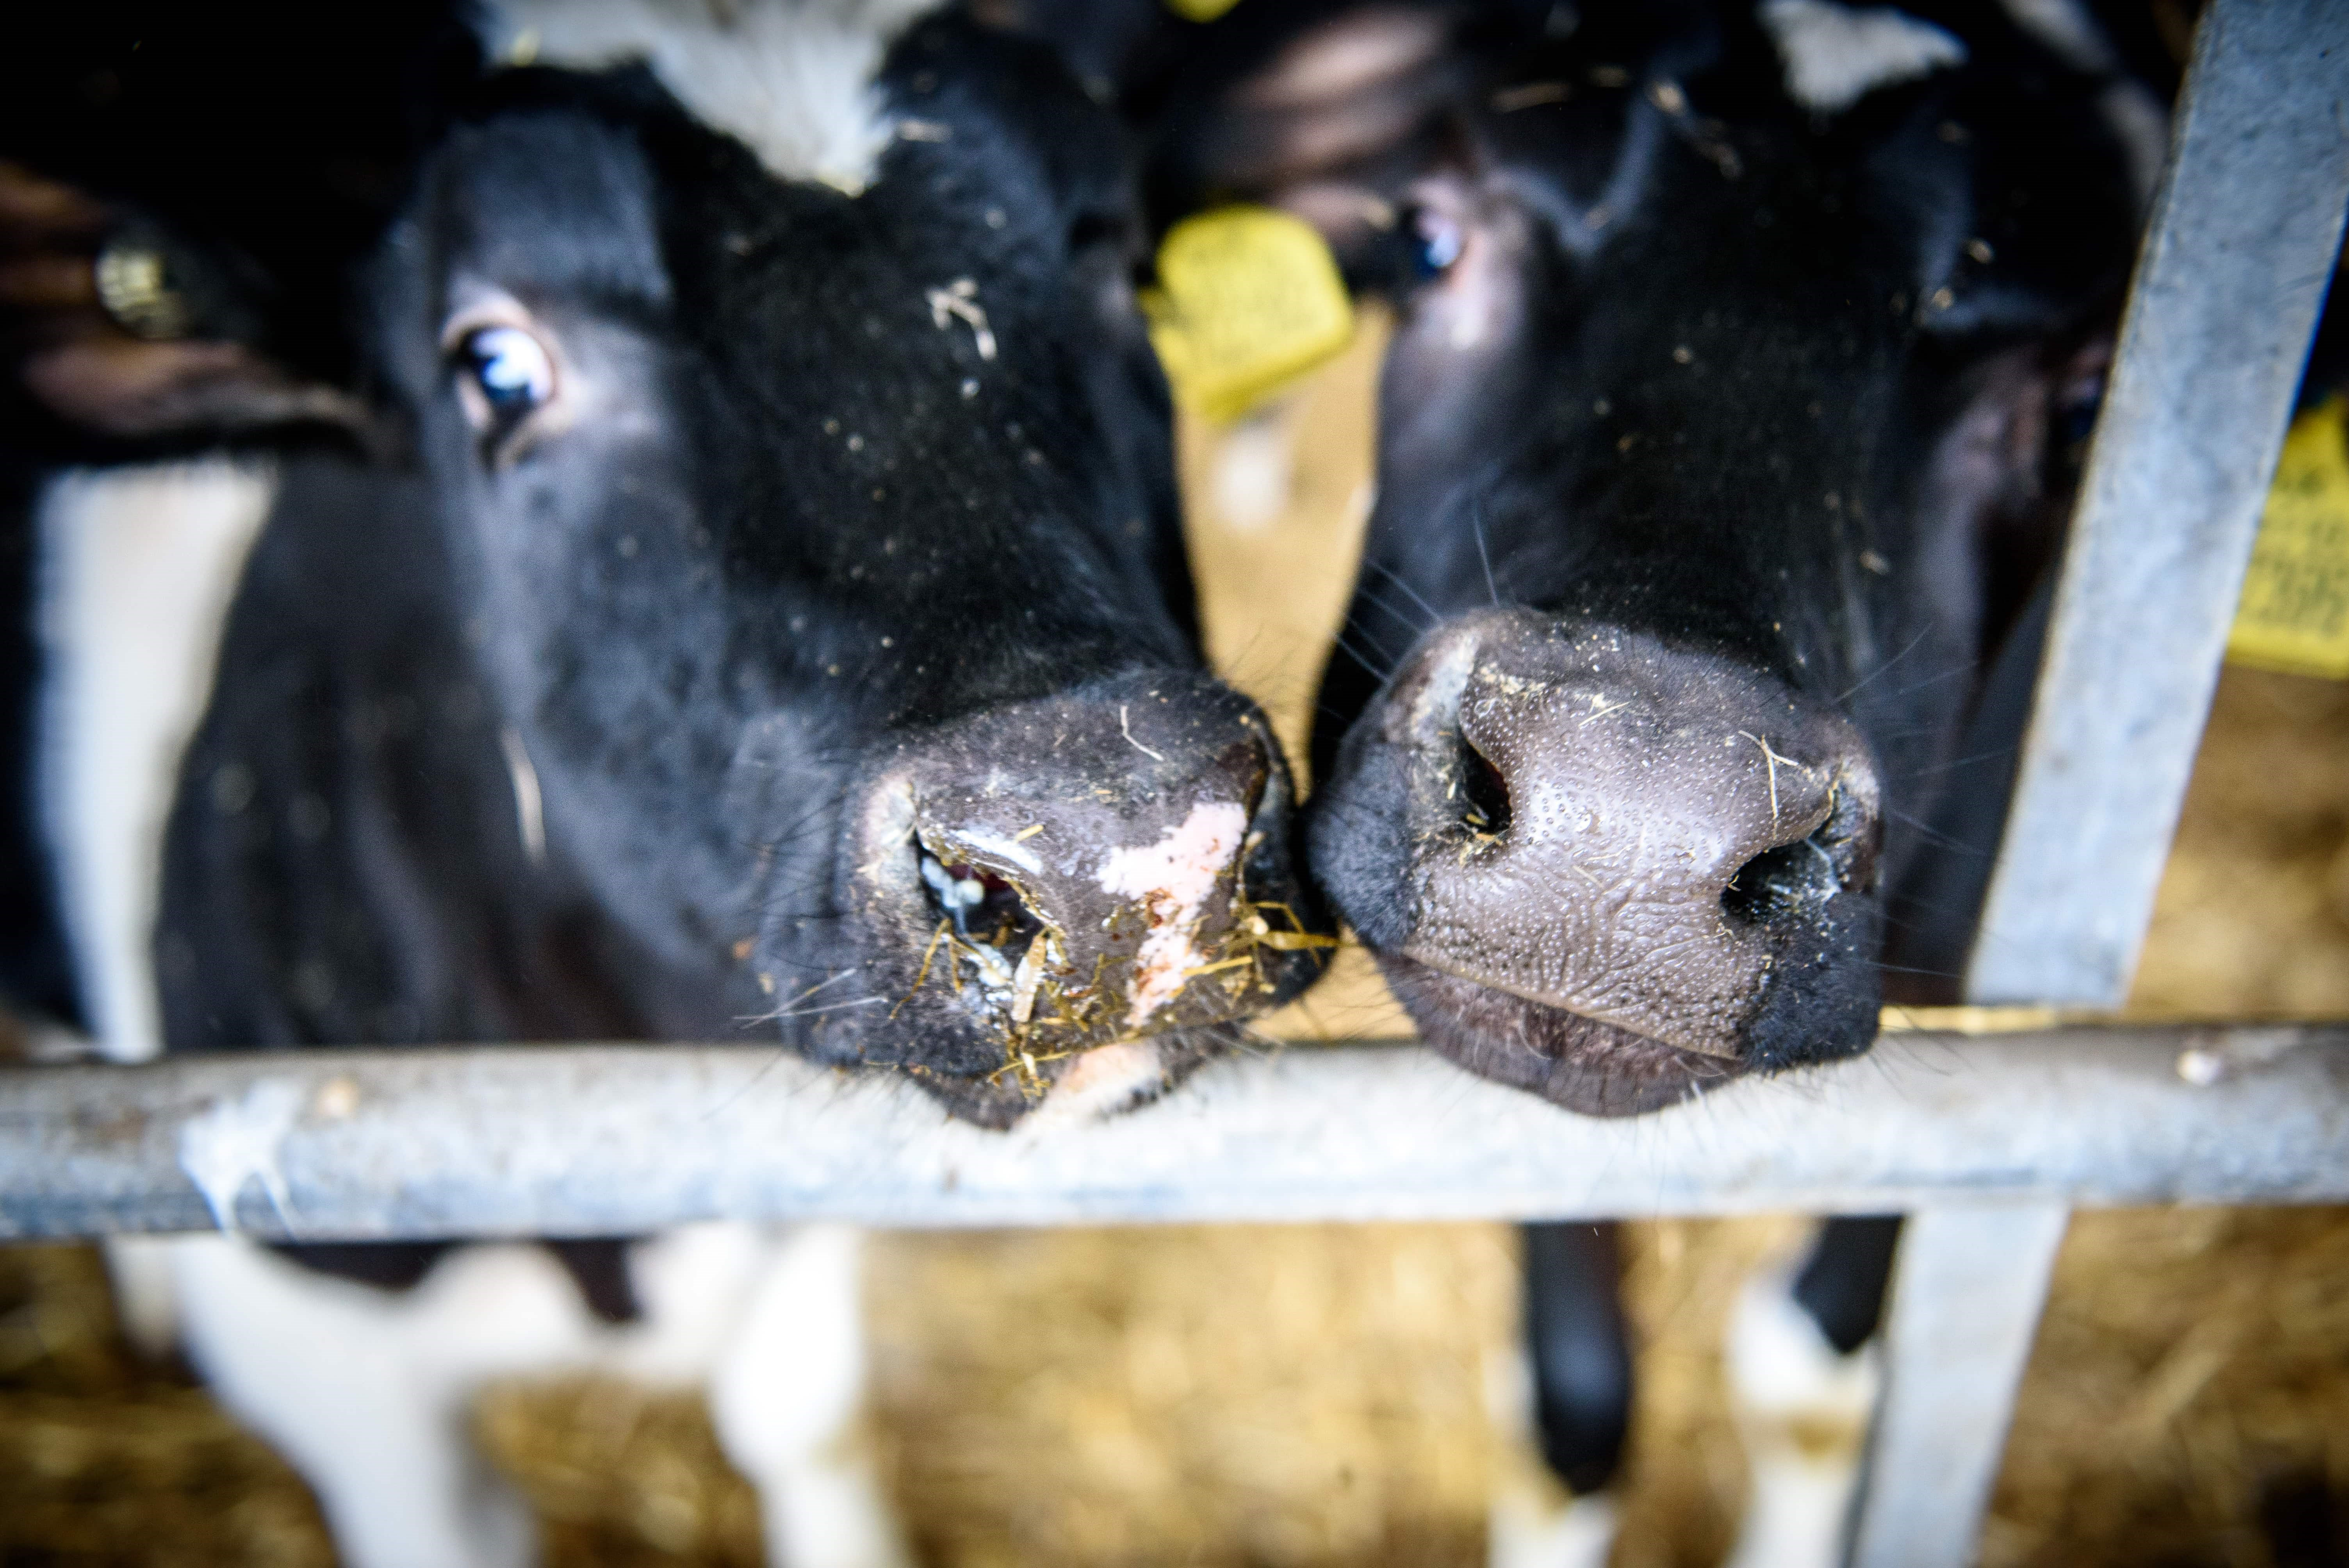 Stakeholders put aside differences to discuss farm antibiotics - but disagree on some key issues